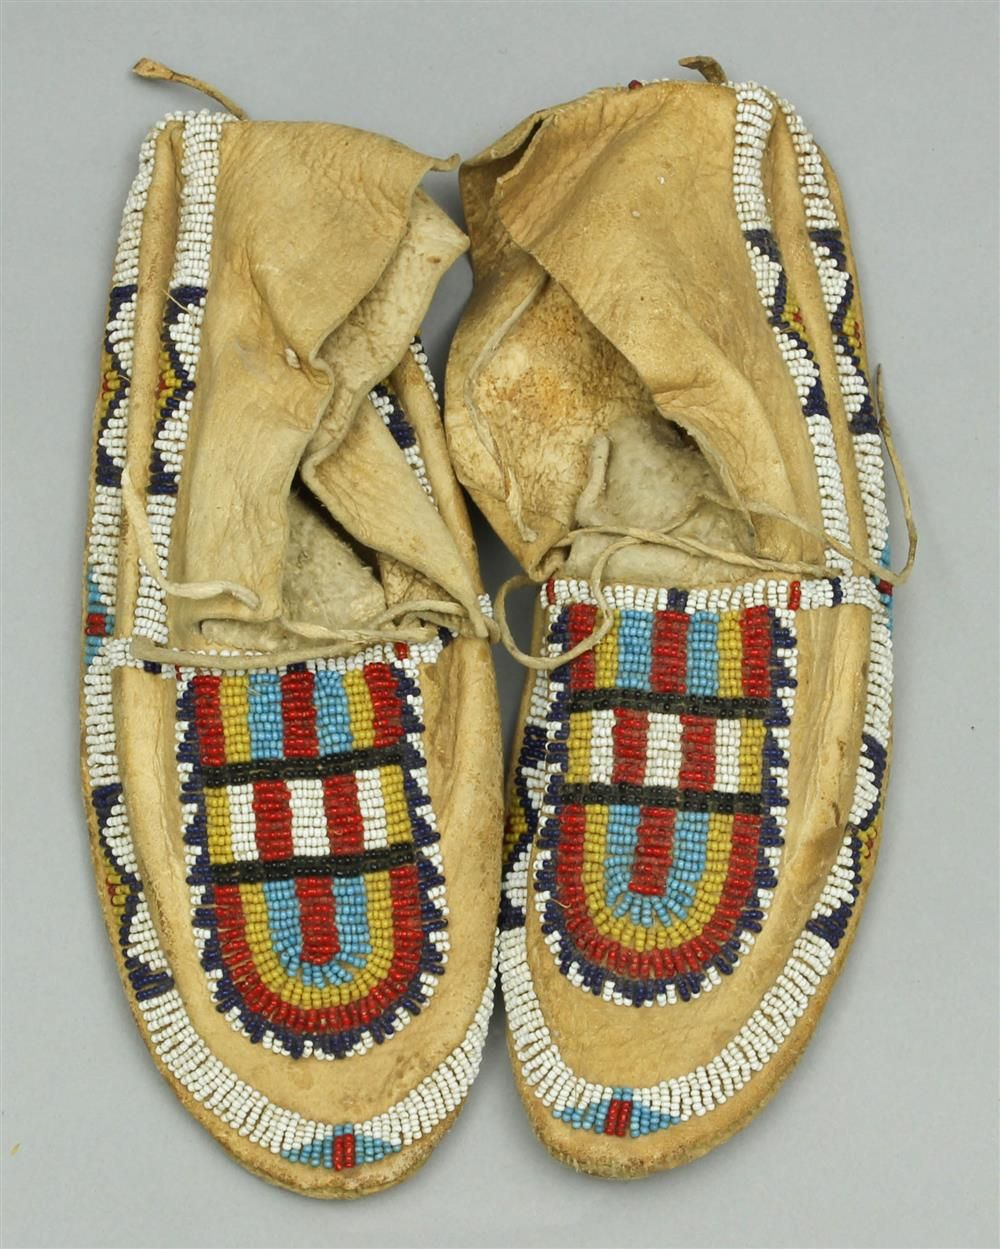 Cheyenne womans moccasins